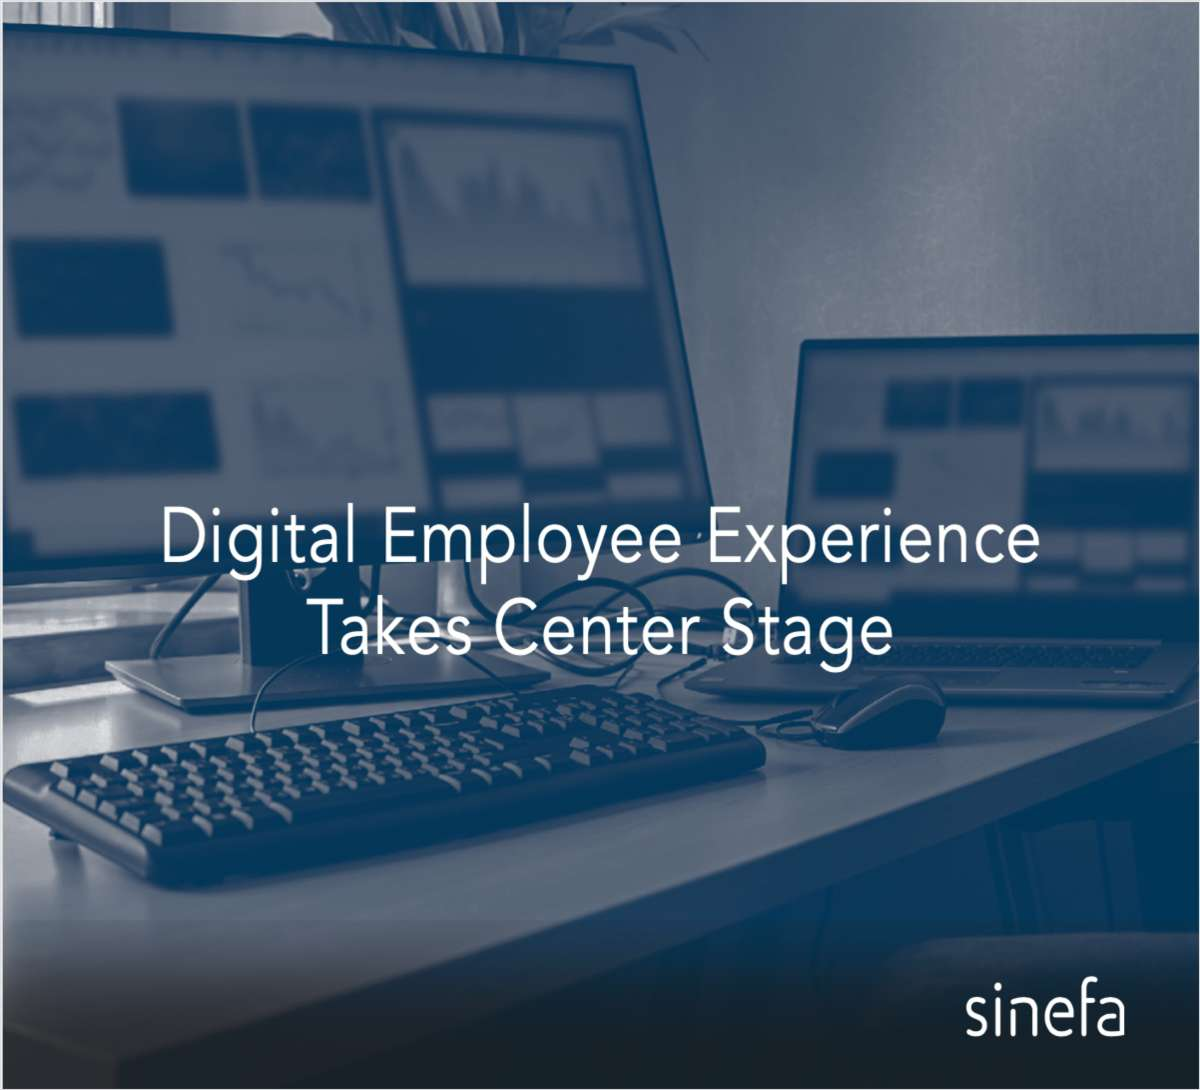 Digital Employee Experience Takes Center Stage